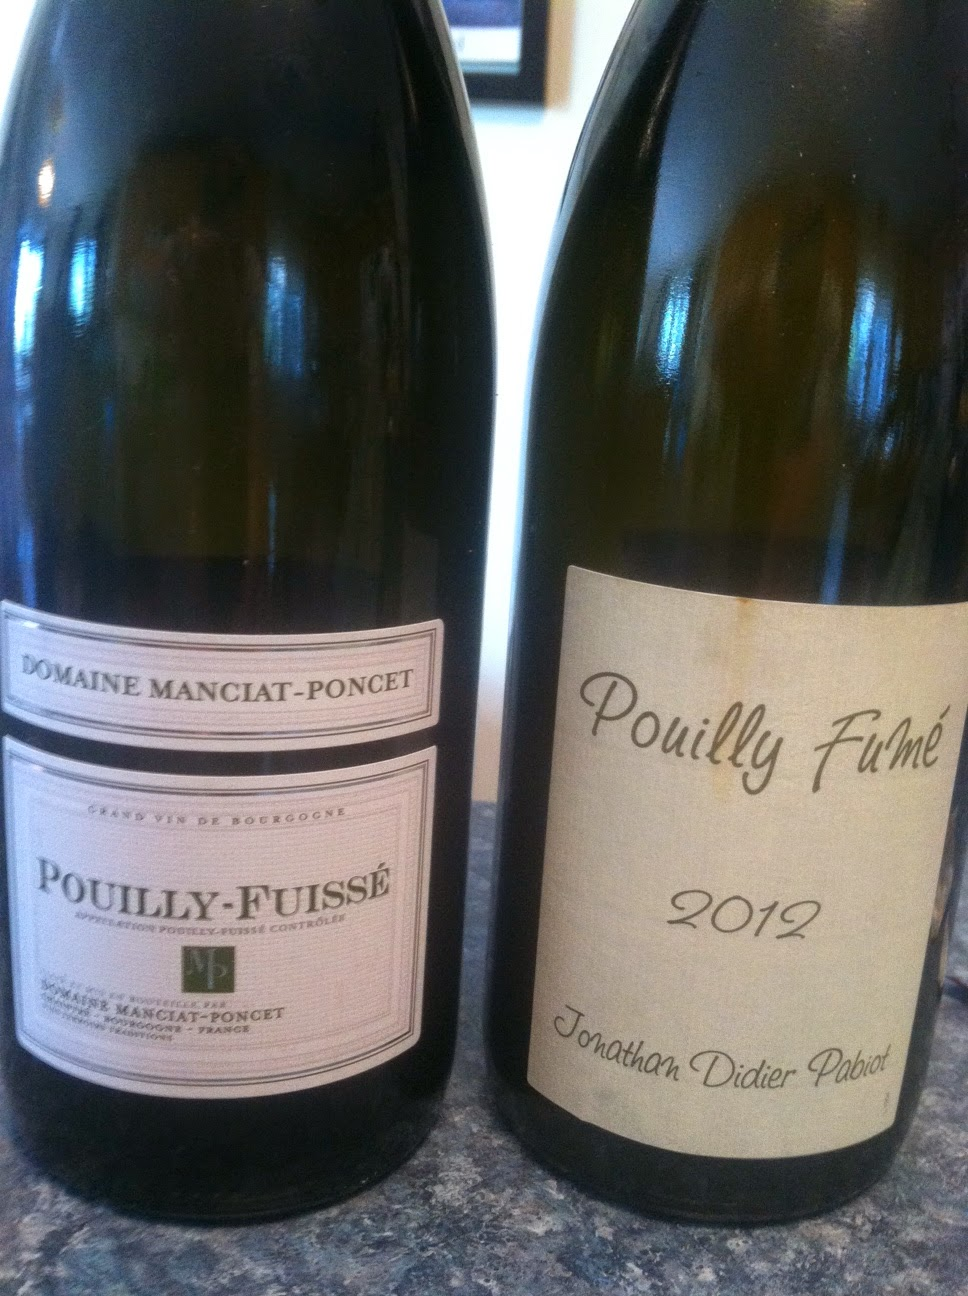 Pouilly-Fuissé and Pouilly-Fumé #wine side by side